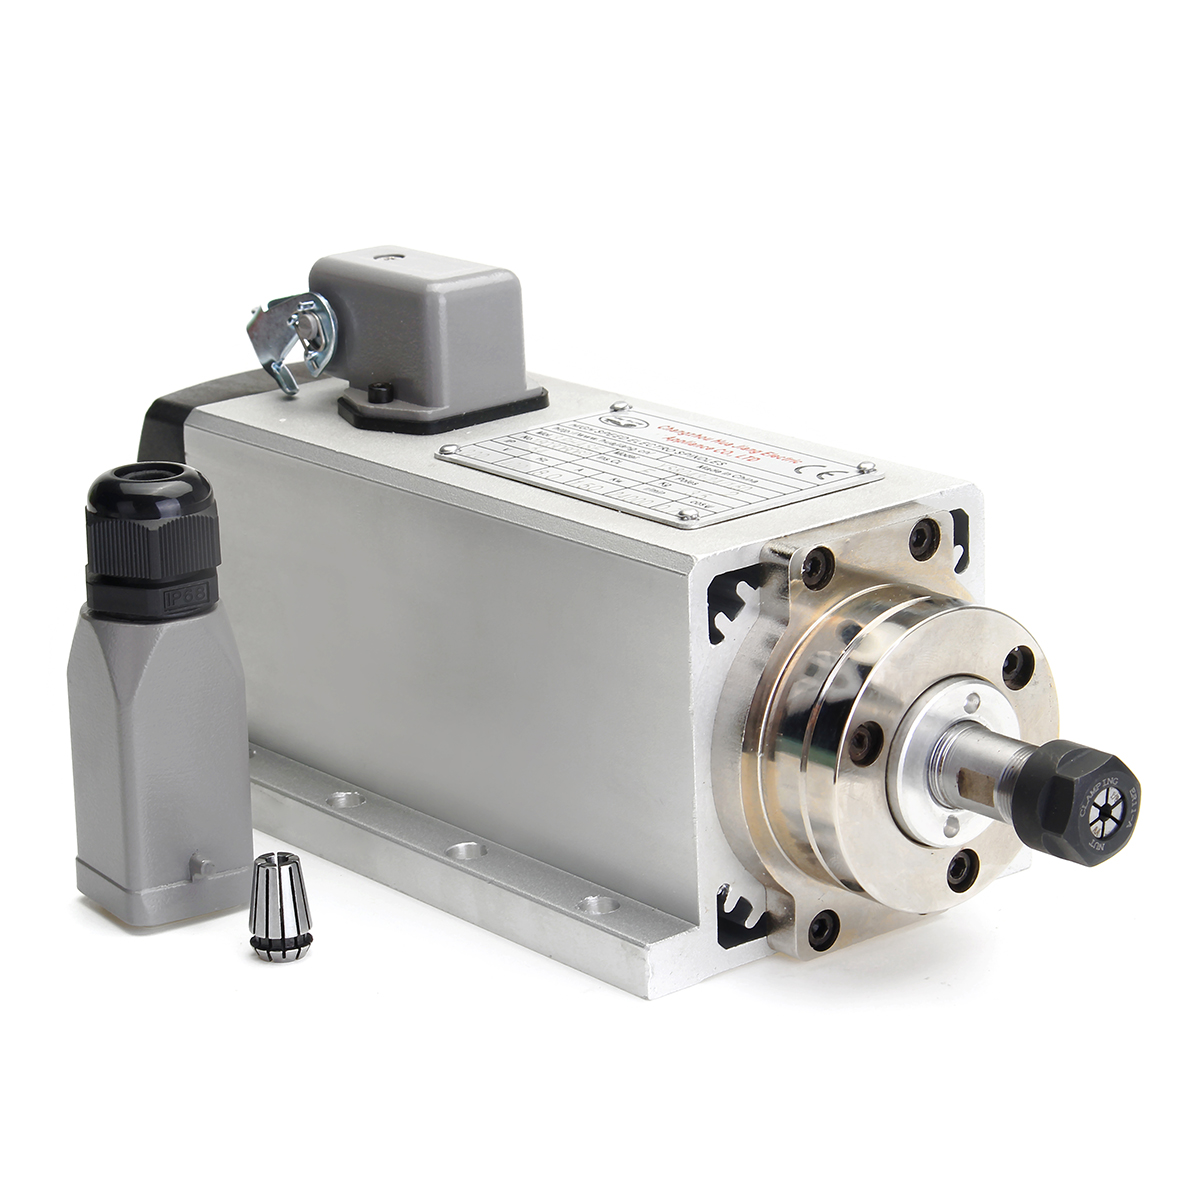 1500W 1.5KW Air Cooled CNC Spindle Motor Woodworking Engraving Machine Principal Axis DIY Power Tool Parts